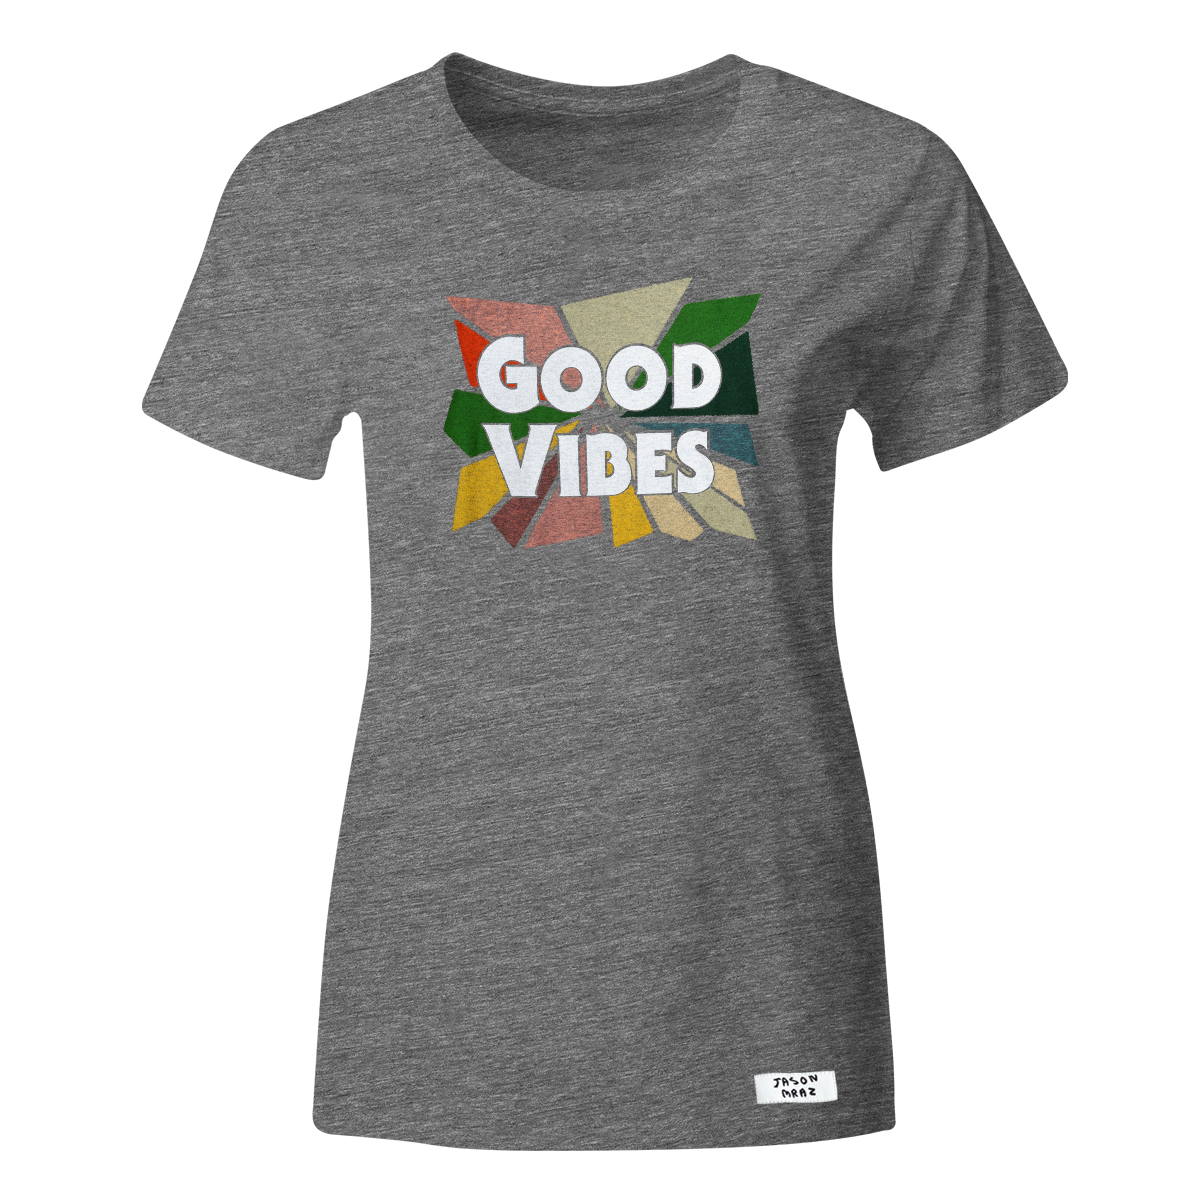 Ladies Good Vibes Tour T-Shirt